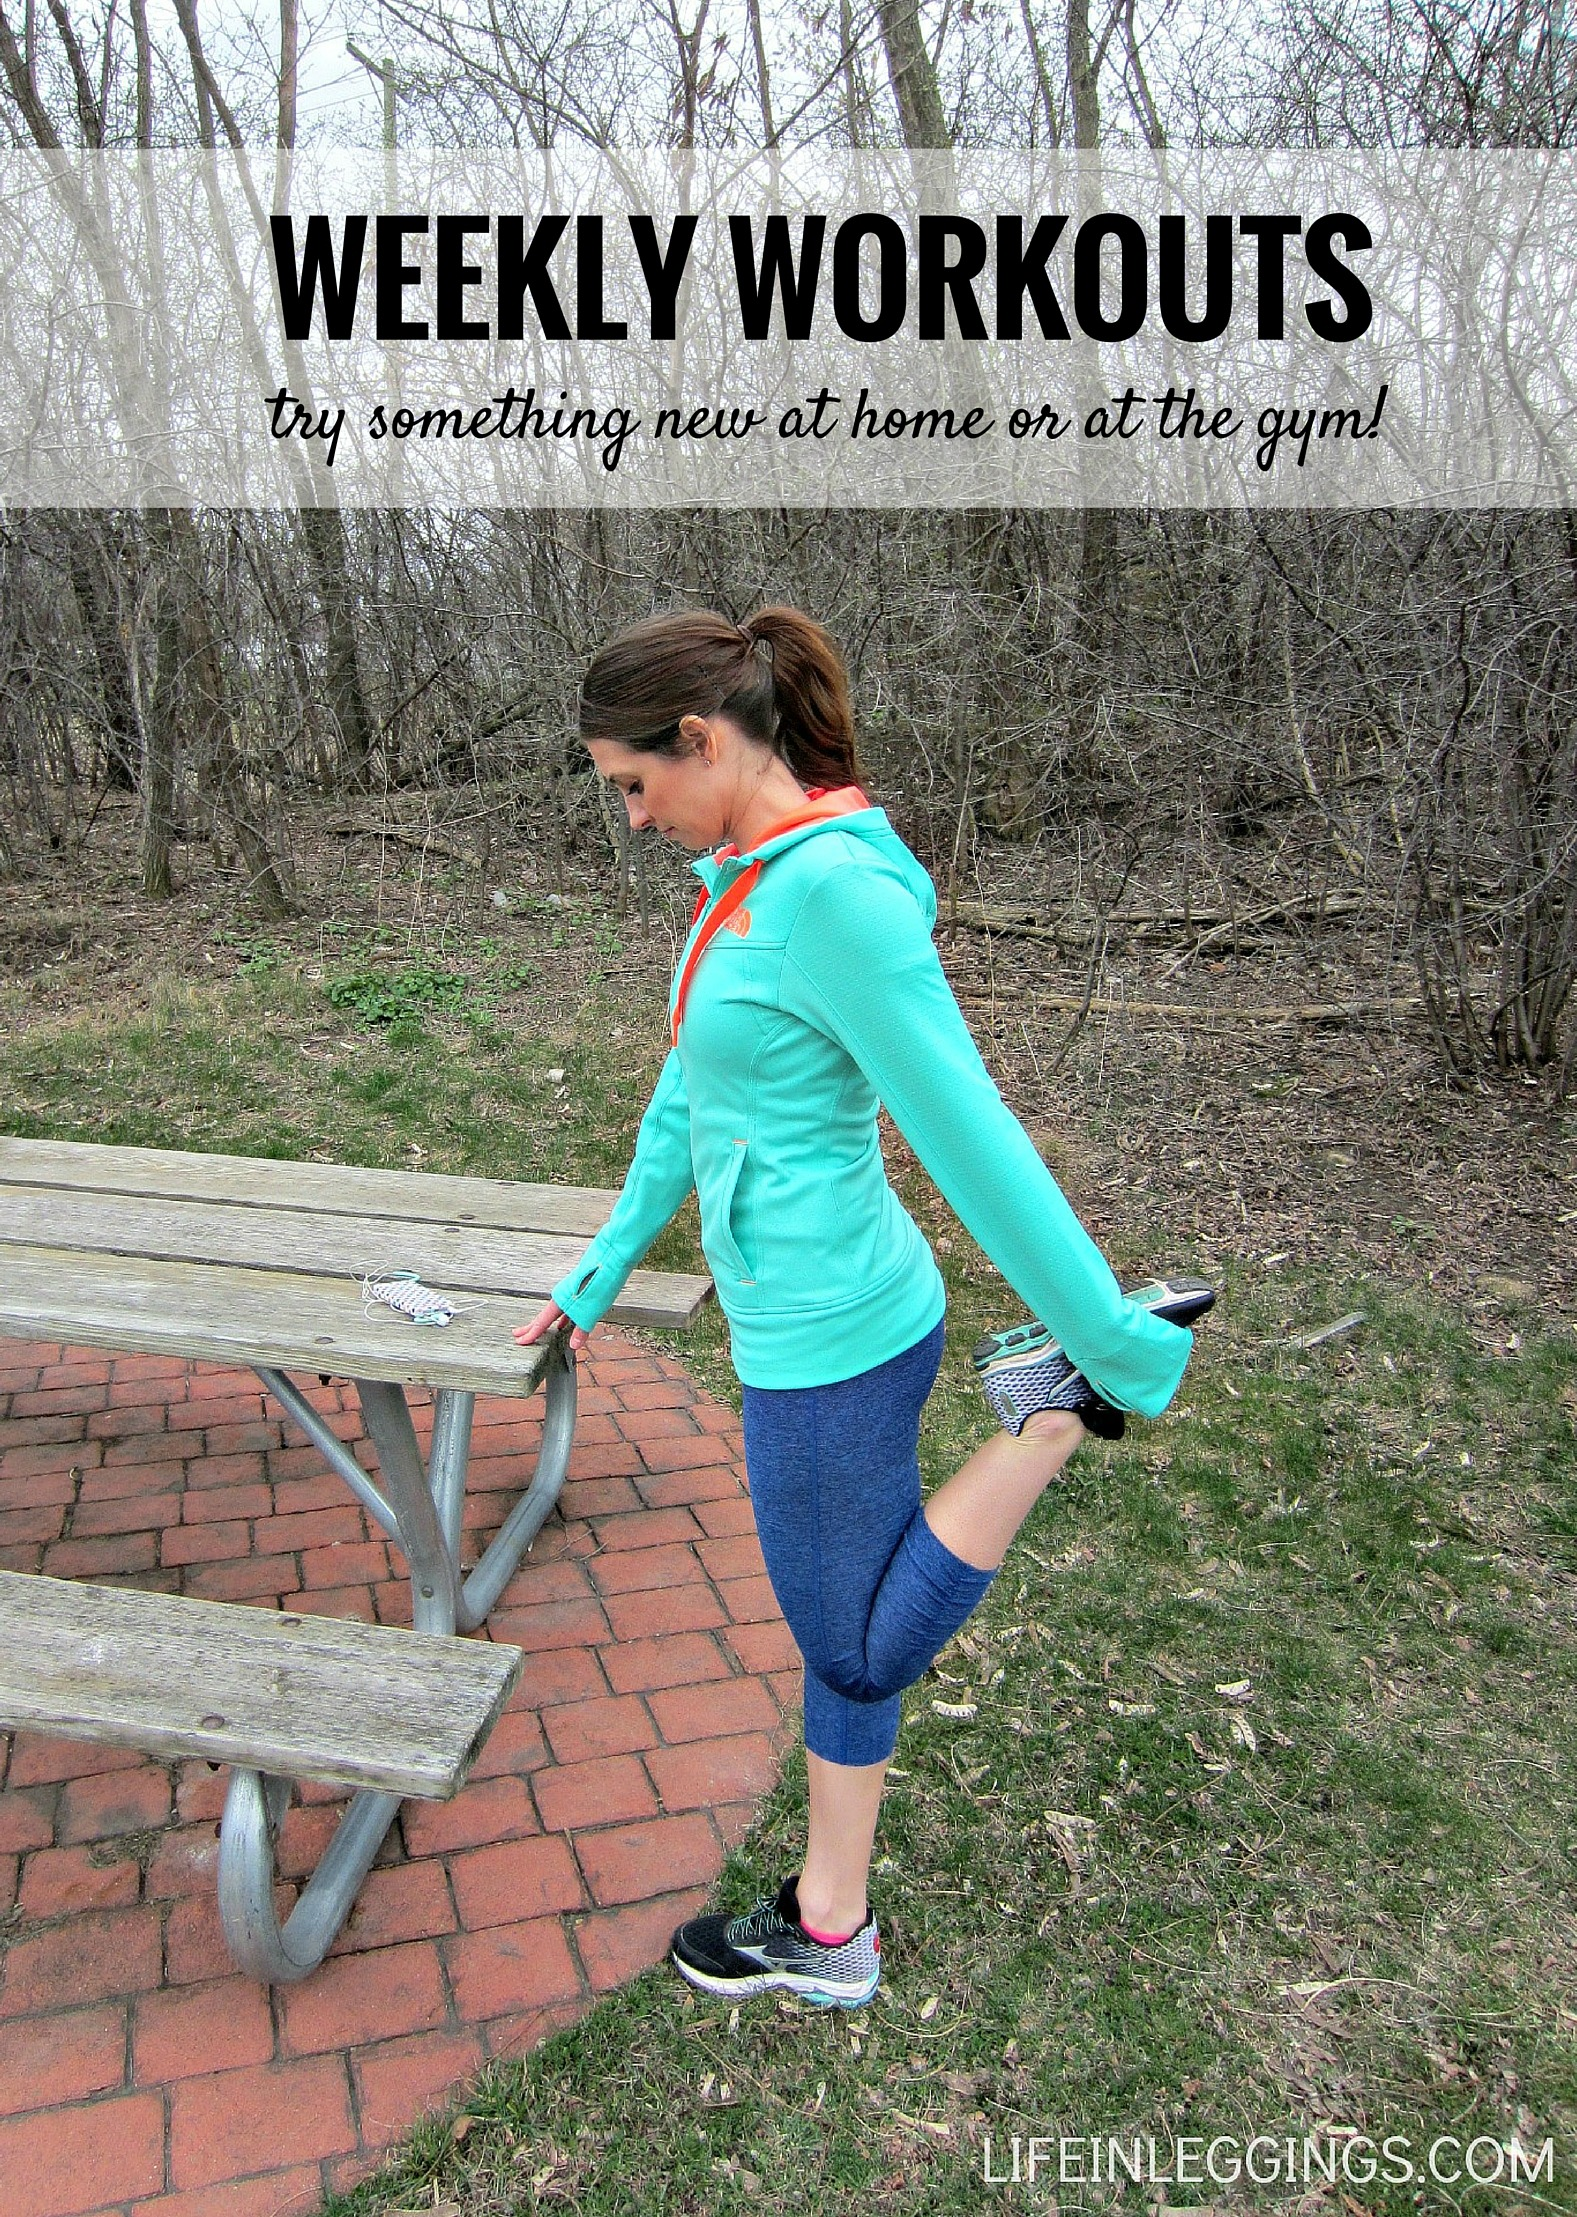 weekly workouts - try something new at home or at the gym